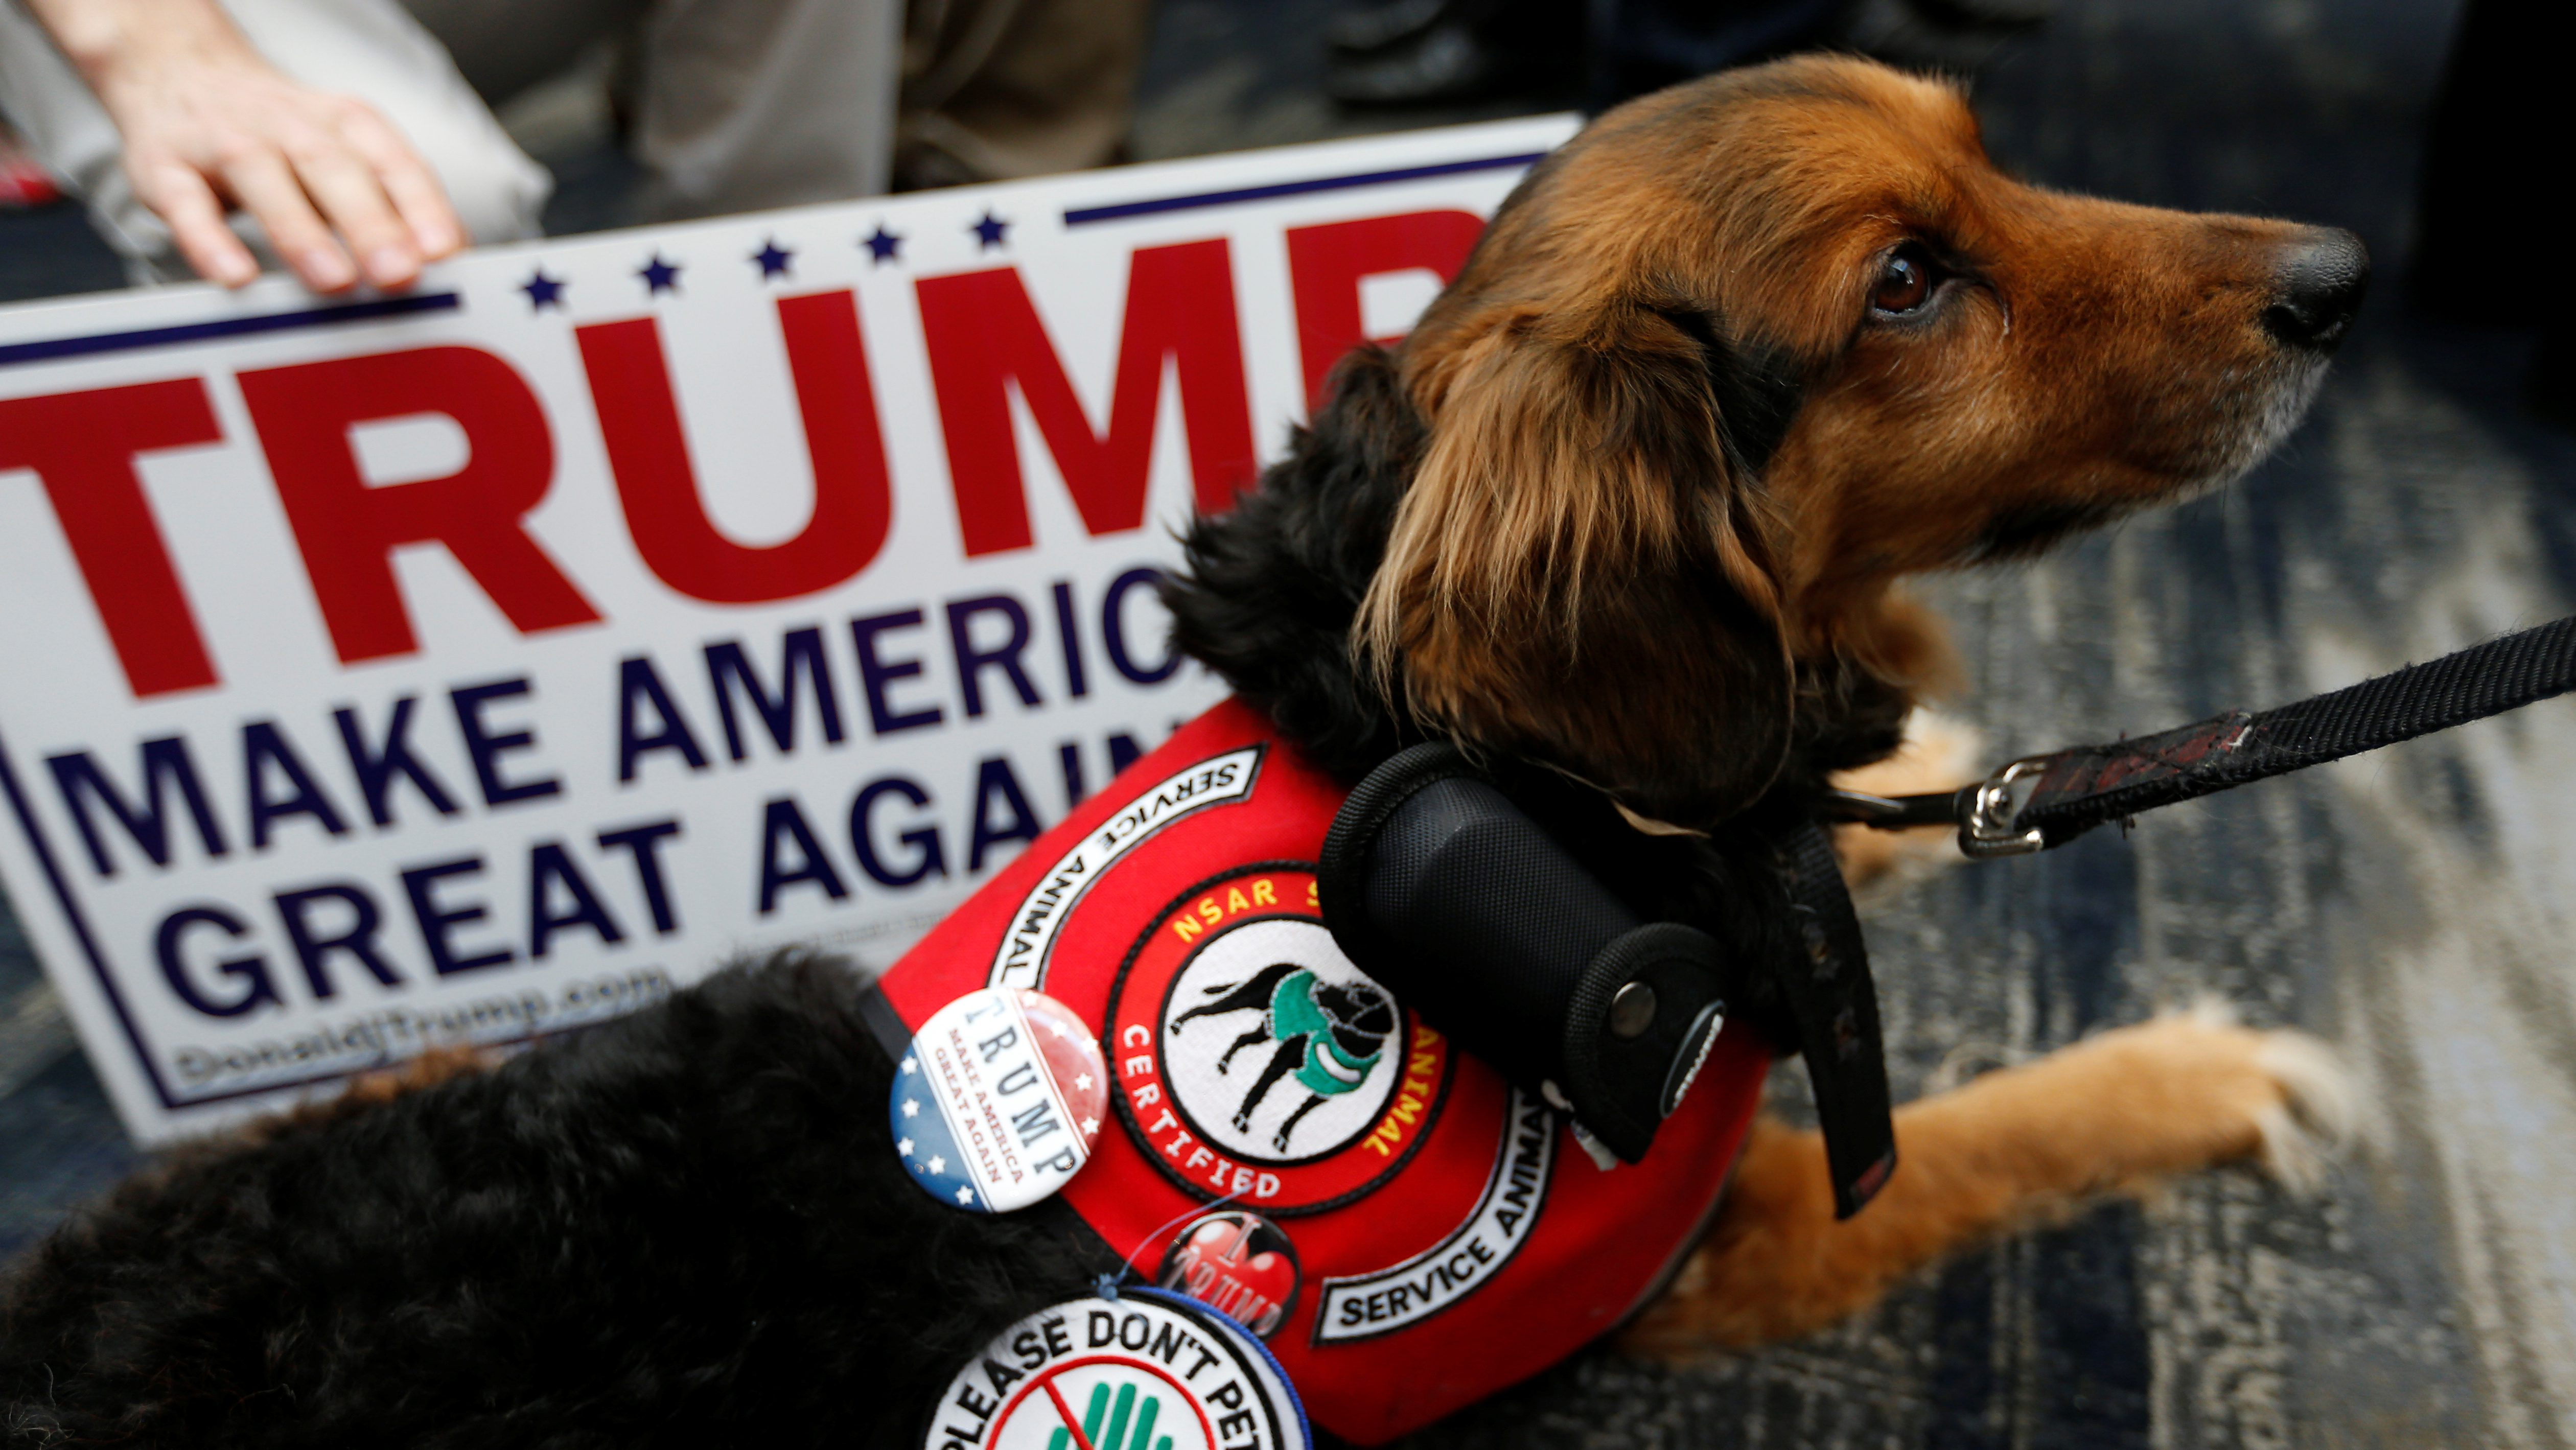 A service dog is seen wearing a pin in support of Republican U.S. presidential candidate Donald Trump during the California Republican Convention in Burlingame, California, U.S., April 29, 2016. REUTERS/Stephen Lam - RTX2C6V9